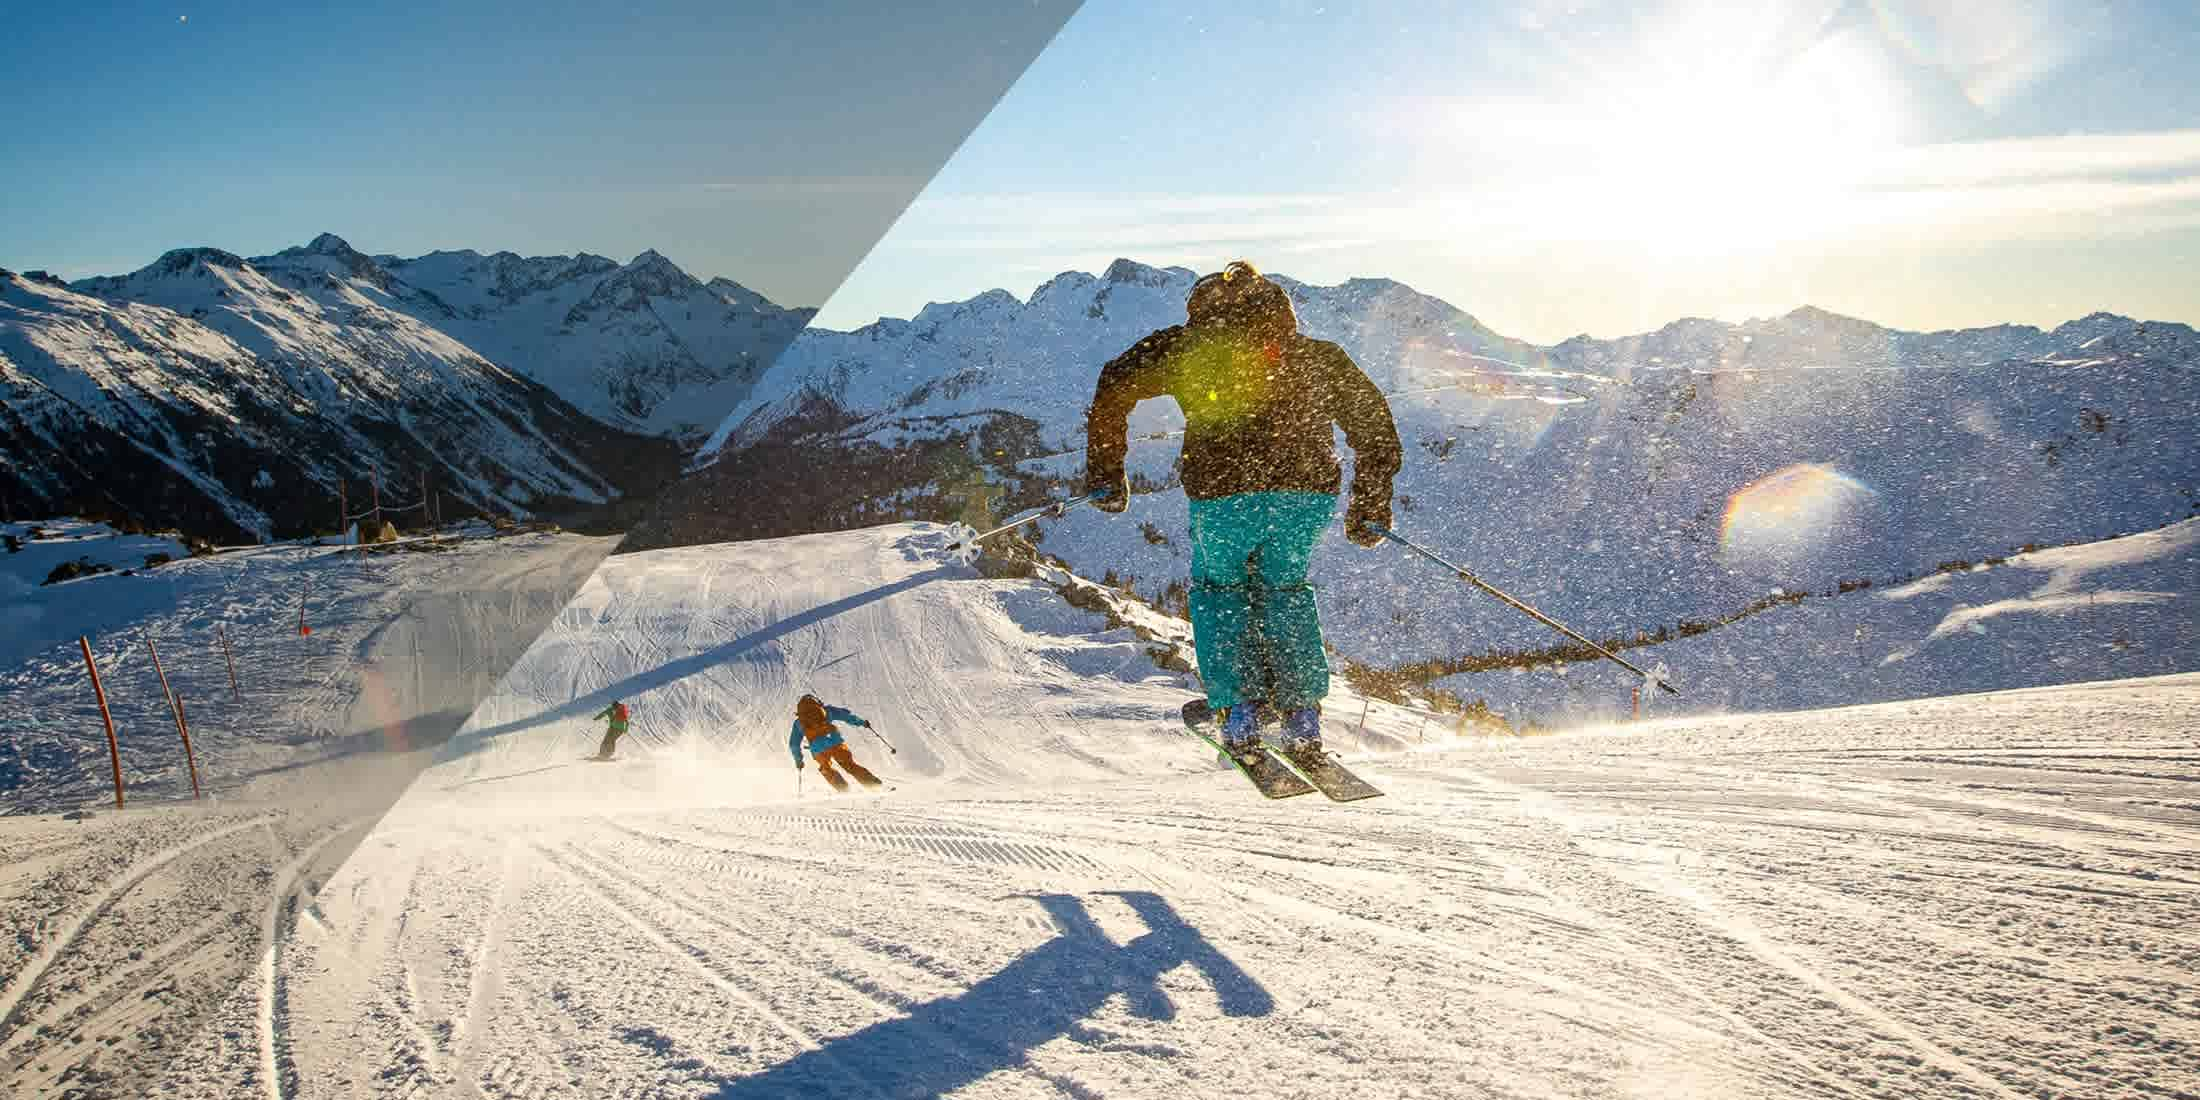 Skiing at Whistler Blackcomb in the winter